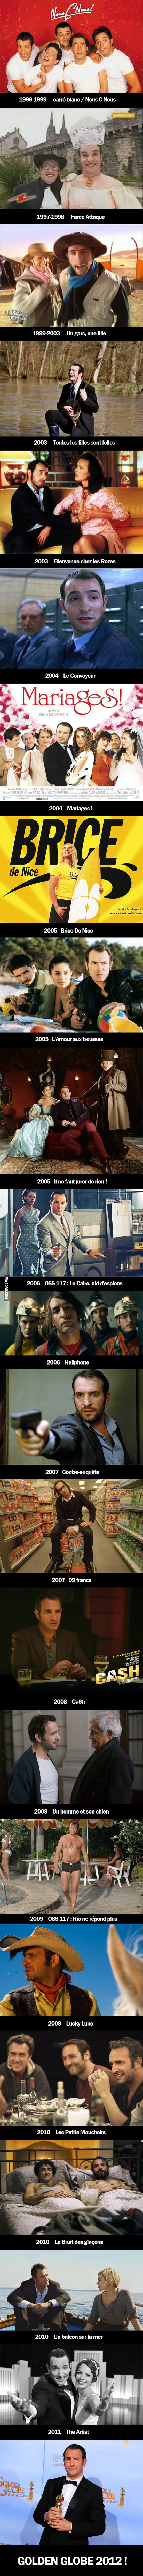 Evolution of Jean Dujardin